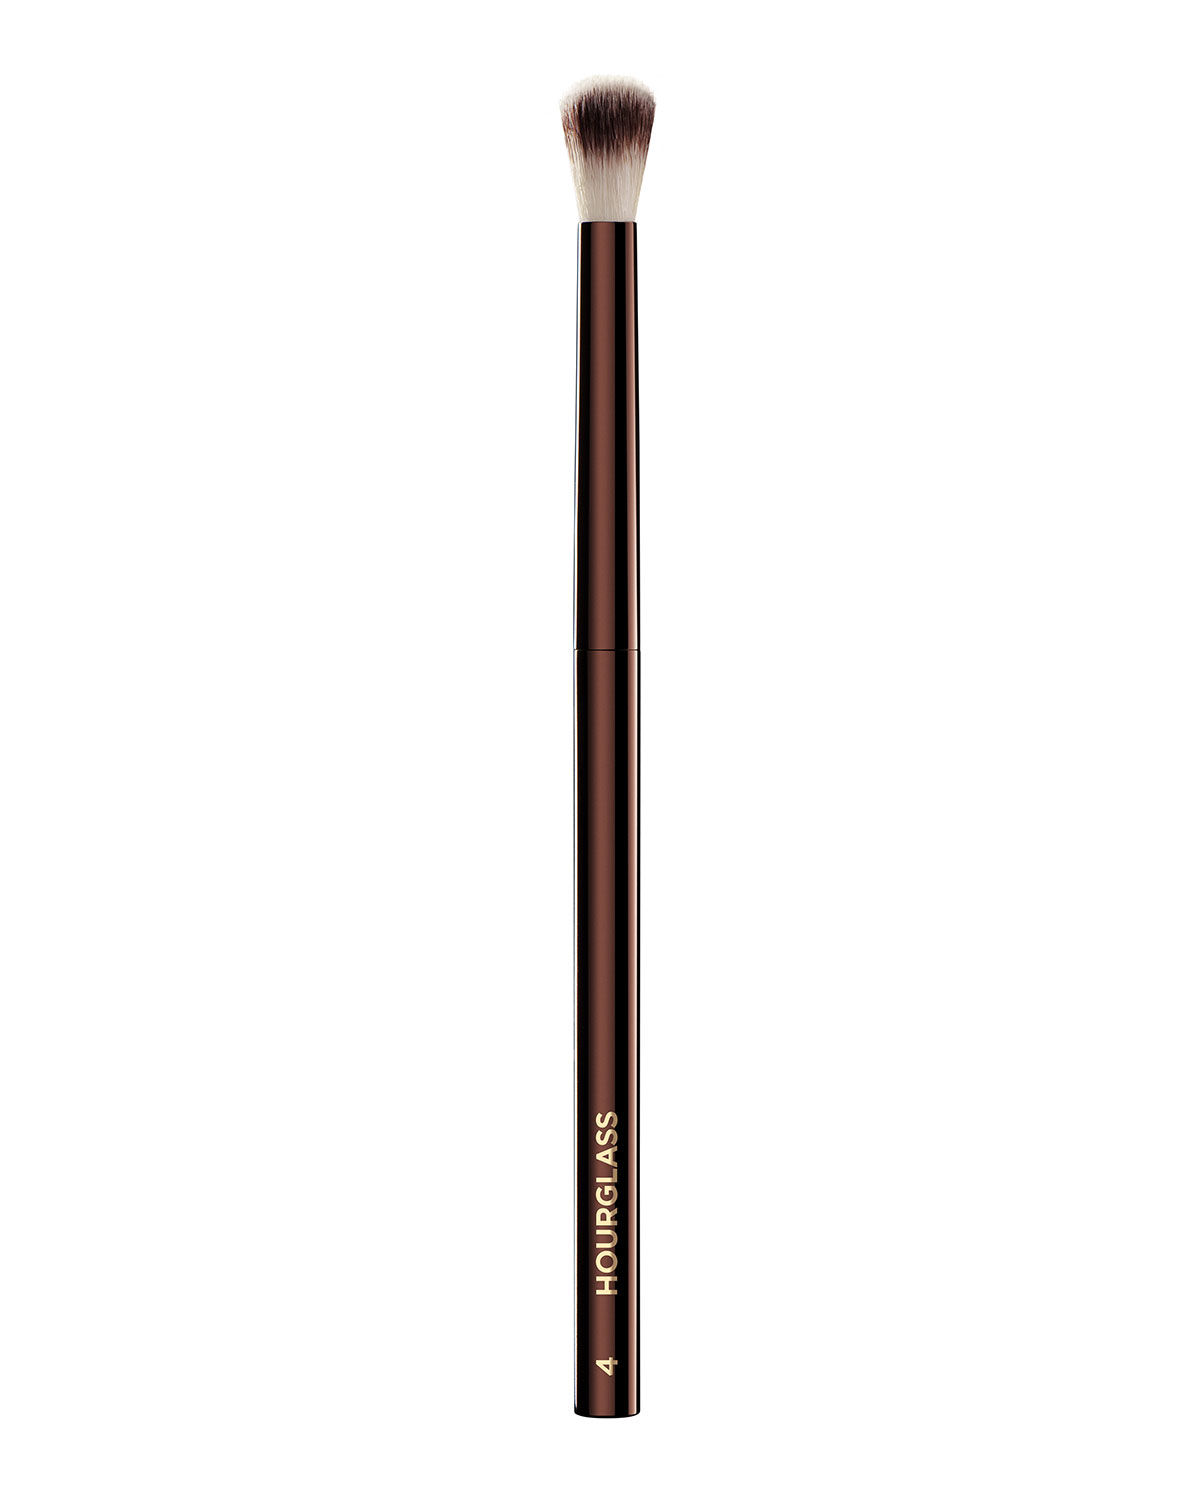 Hourglass Cosmetics No. 4 Crease Brush